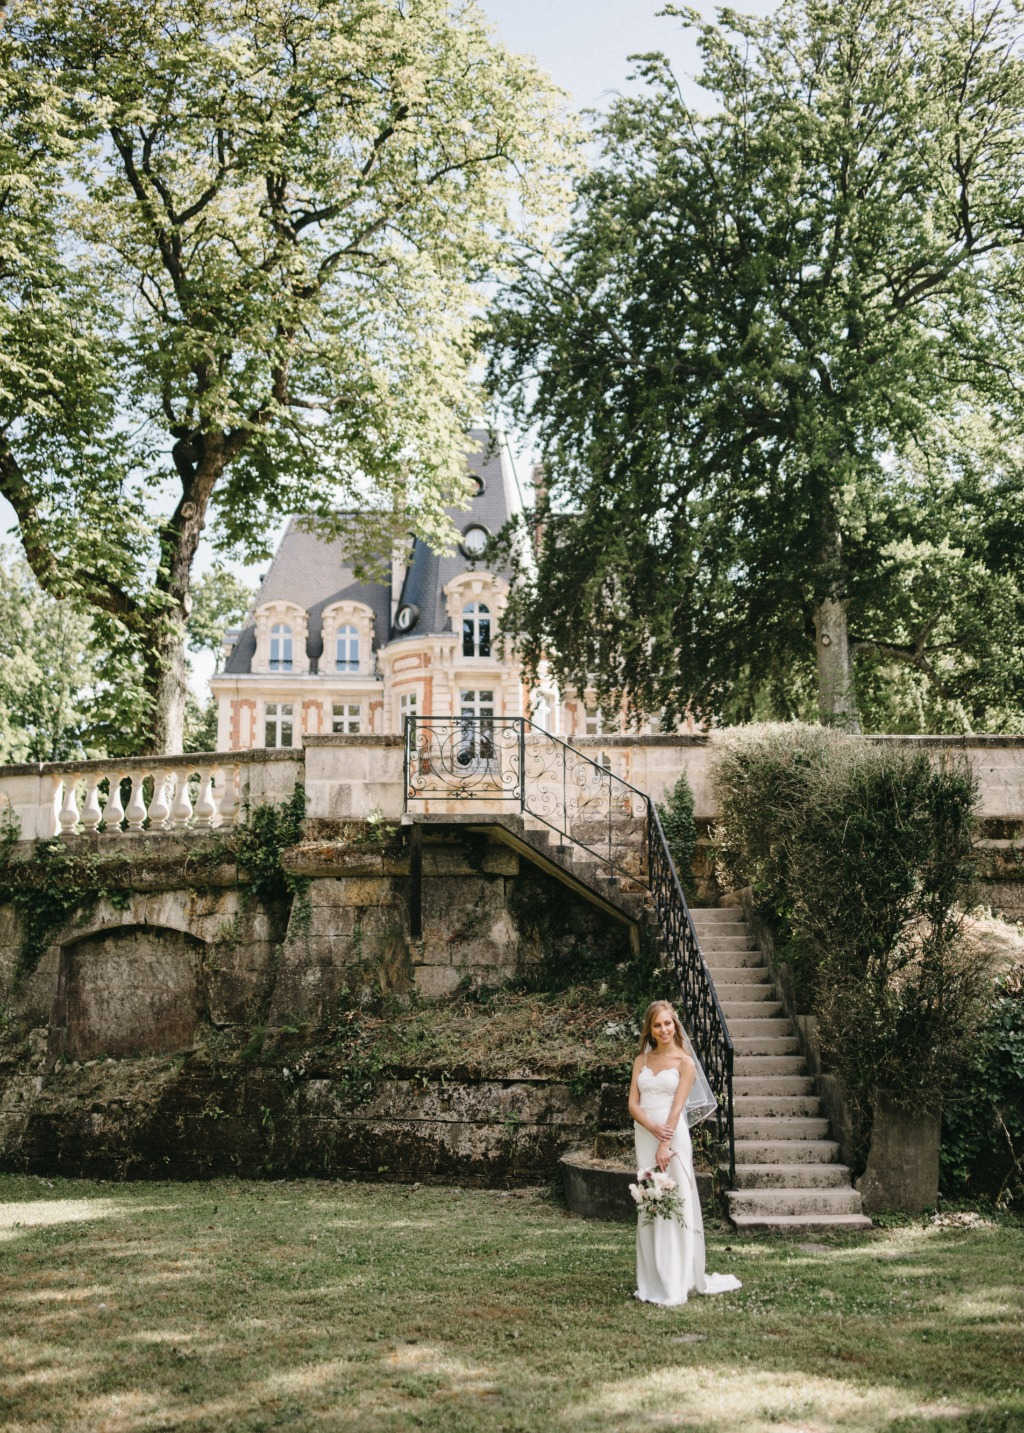 Fairy tale wedding in a castle in France